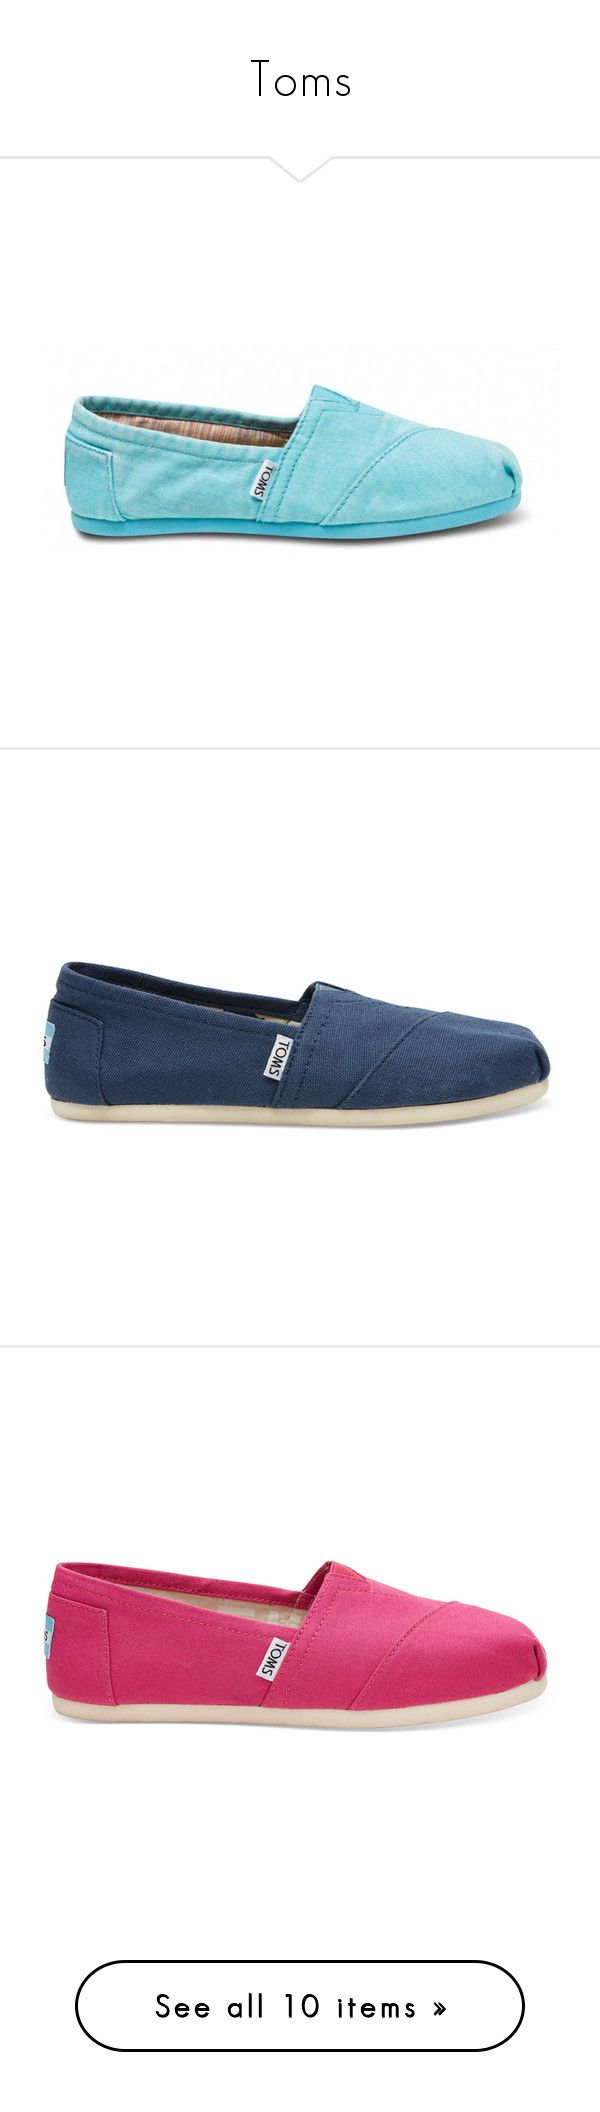 """""""Toms"""" by taytayholland ❤ liked on Polyvore featuring shoes, flats, navy, flat shoes, flat slip on shoes, navy blue flats, canvas flats, canvas slip on shoes, fuchsia and slip on shoes"""